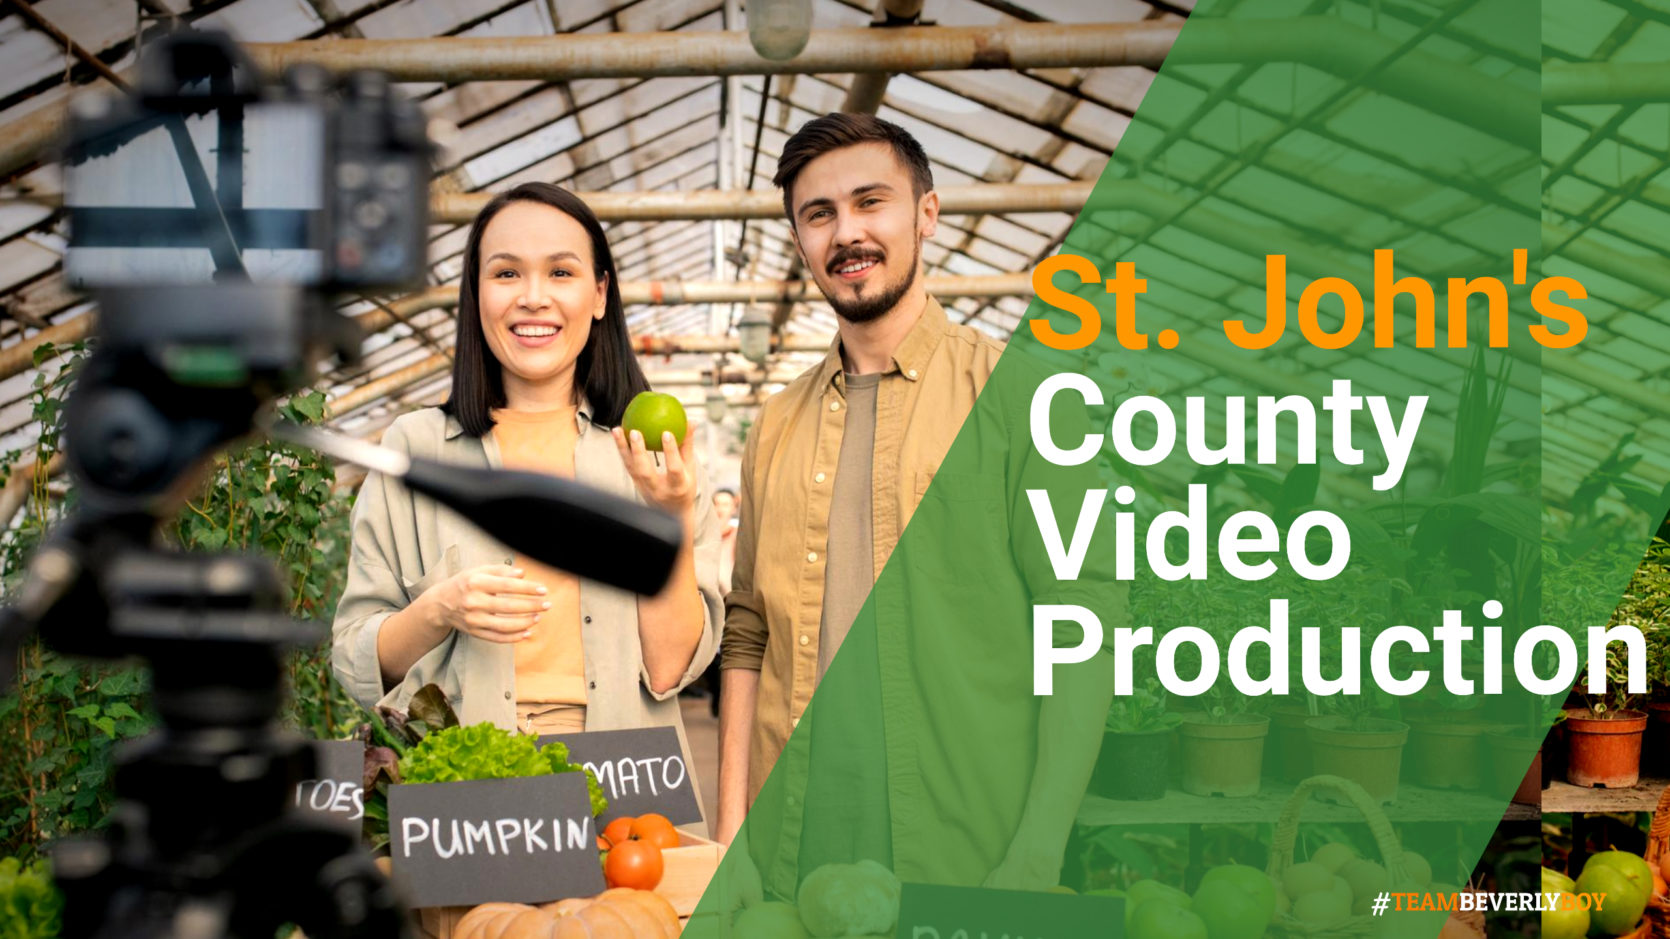 St. John's County video production